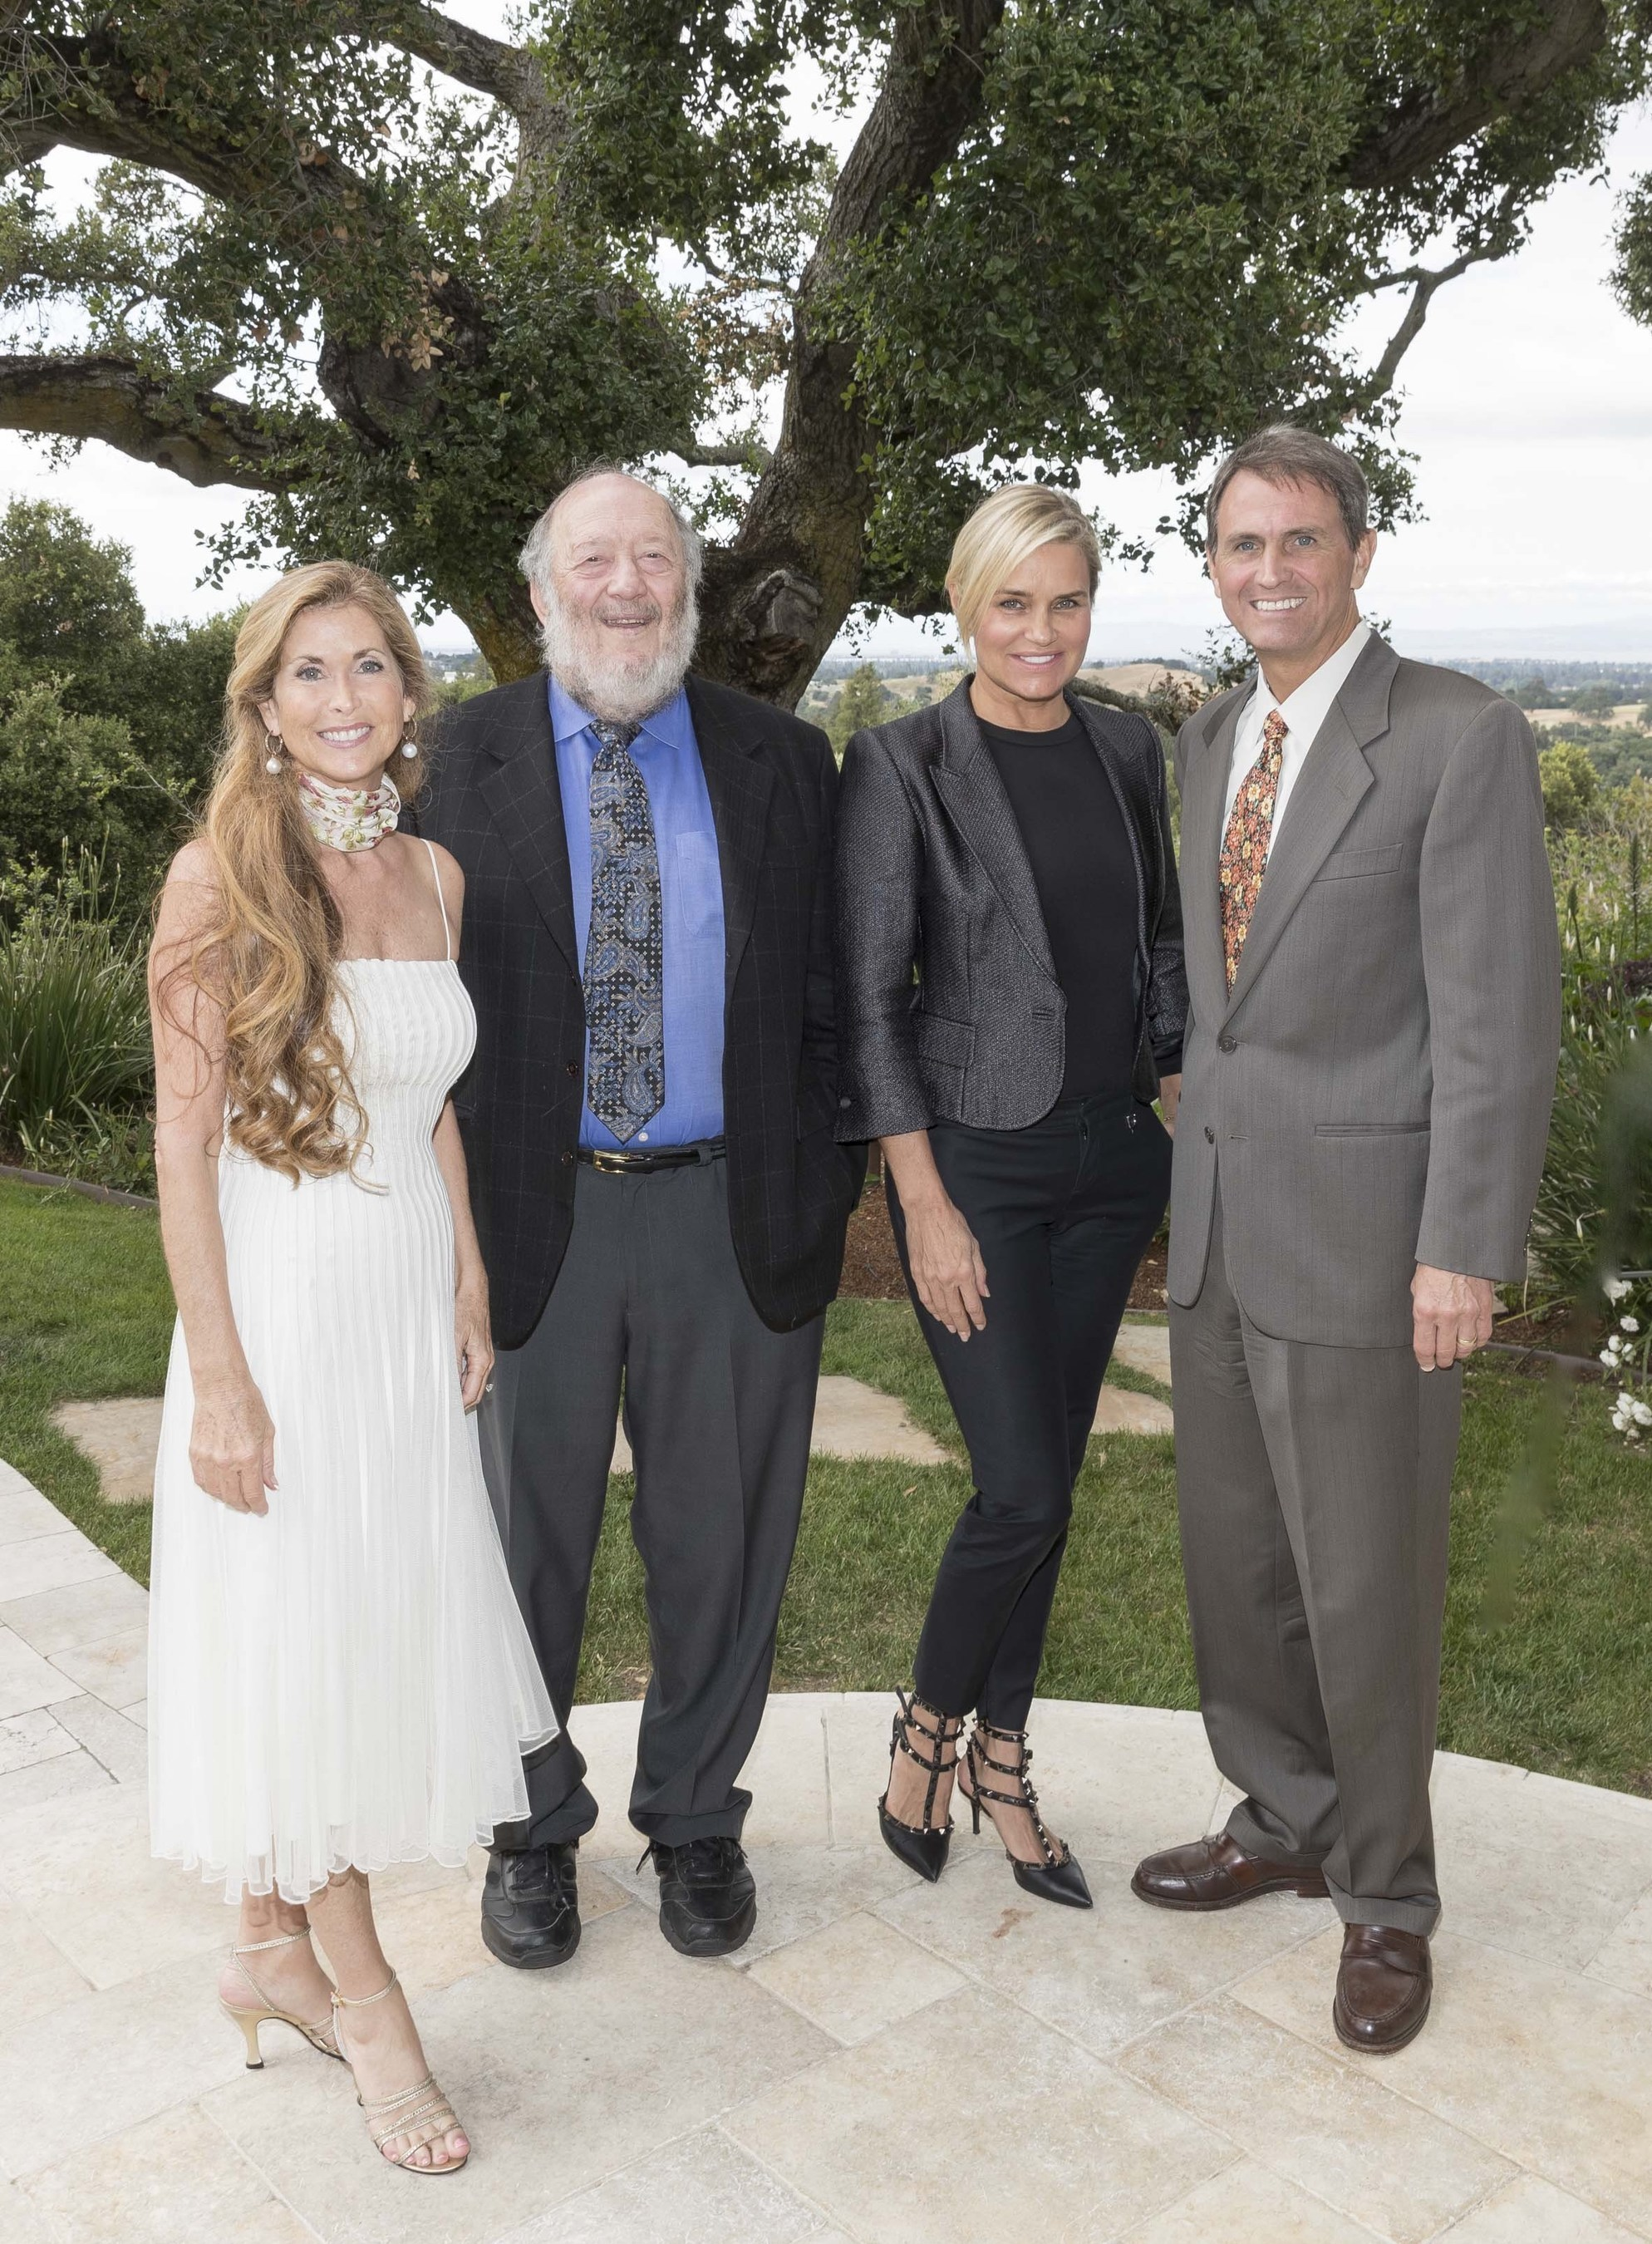 Stand4Lyme Foundation founder and president Sherry Cagan, esteemed Stanford University stem-cell scientist Irv Weissman, Stanford Lyme Disease Working Group advisor, along with Stand4Lyme Catalyst 4 The Cure celebrity honorary chair Yolanda Hadid, high profile Lyme disease advocate, a member of the Real Housewives of Beverly Hills TV show, and Laird Cagan, founder and chief strategy officer.